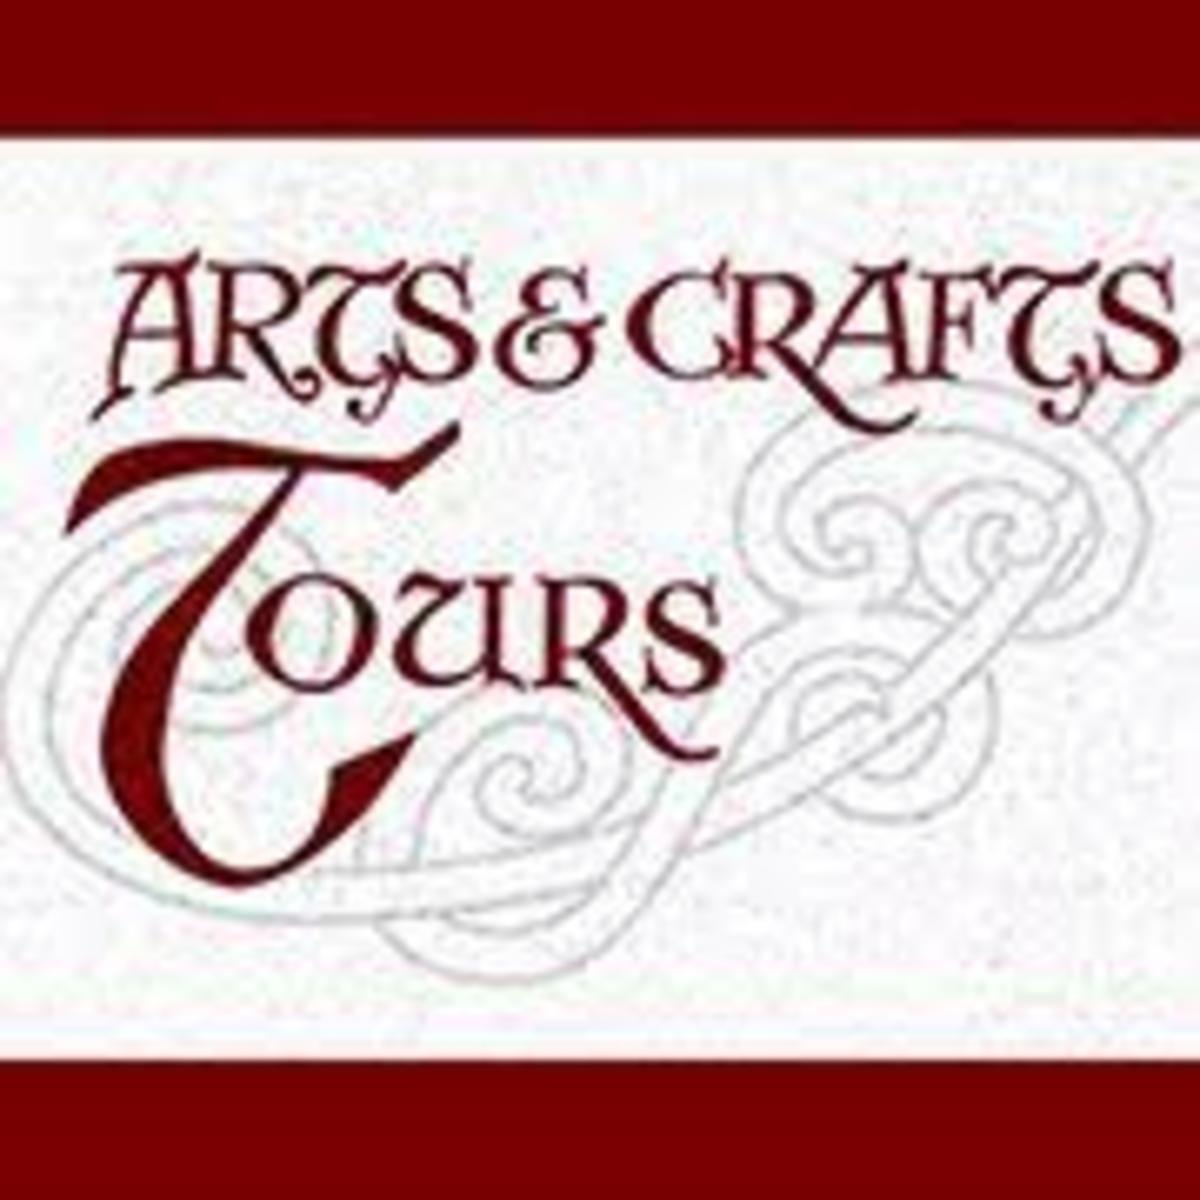 arts & crafts tours logo